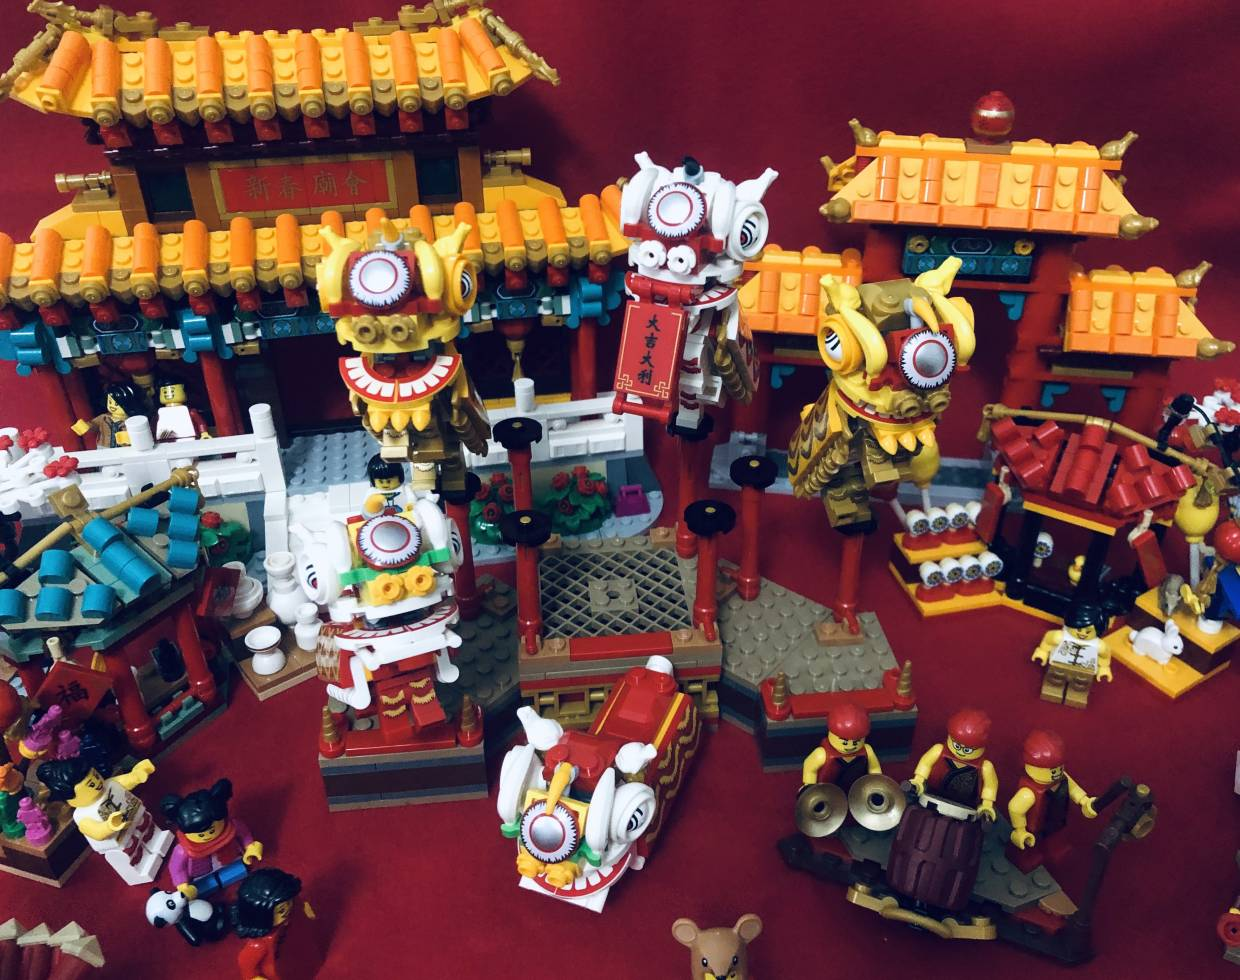 You can combine both sets together to make one epic CNY scene!